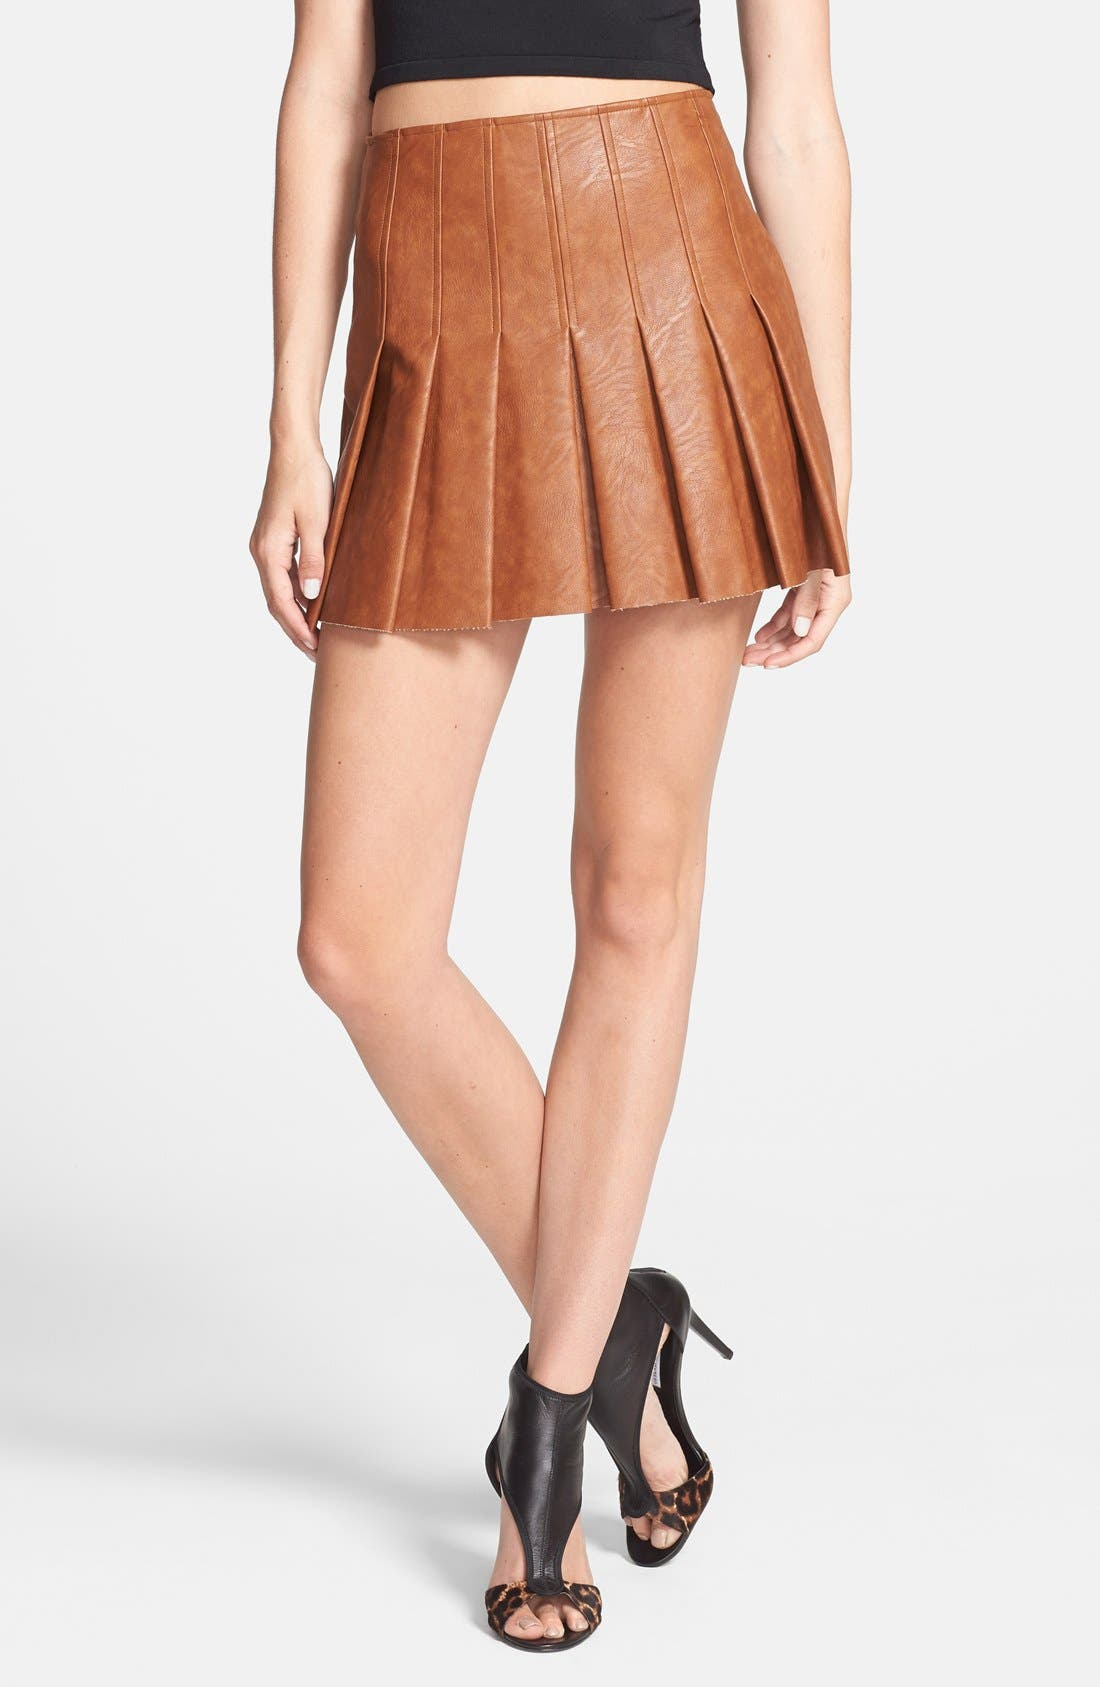 Alternate Image 1 Selected - ASTR Faux Leather Pleat Front Skirt